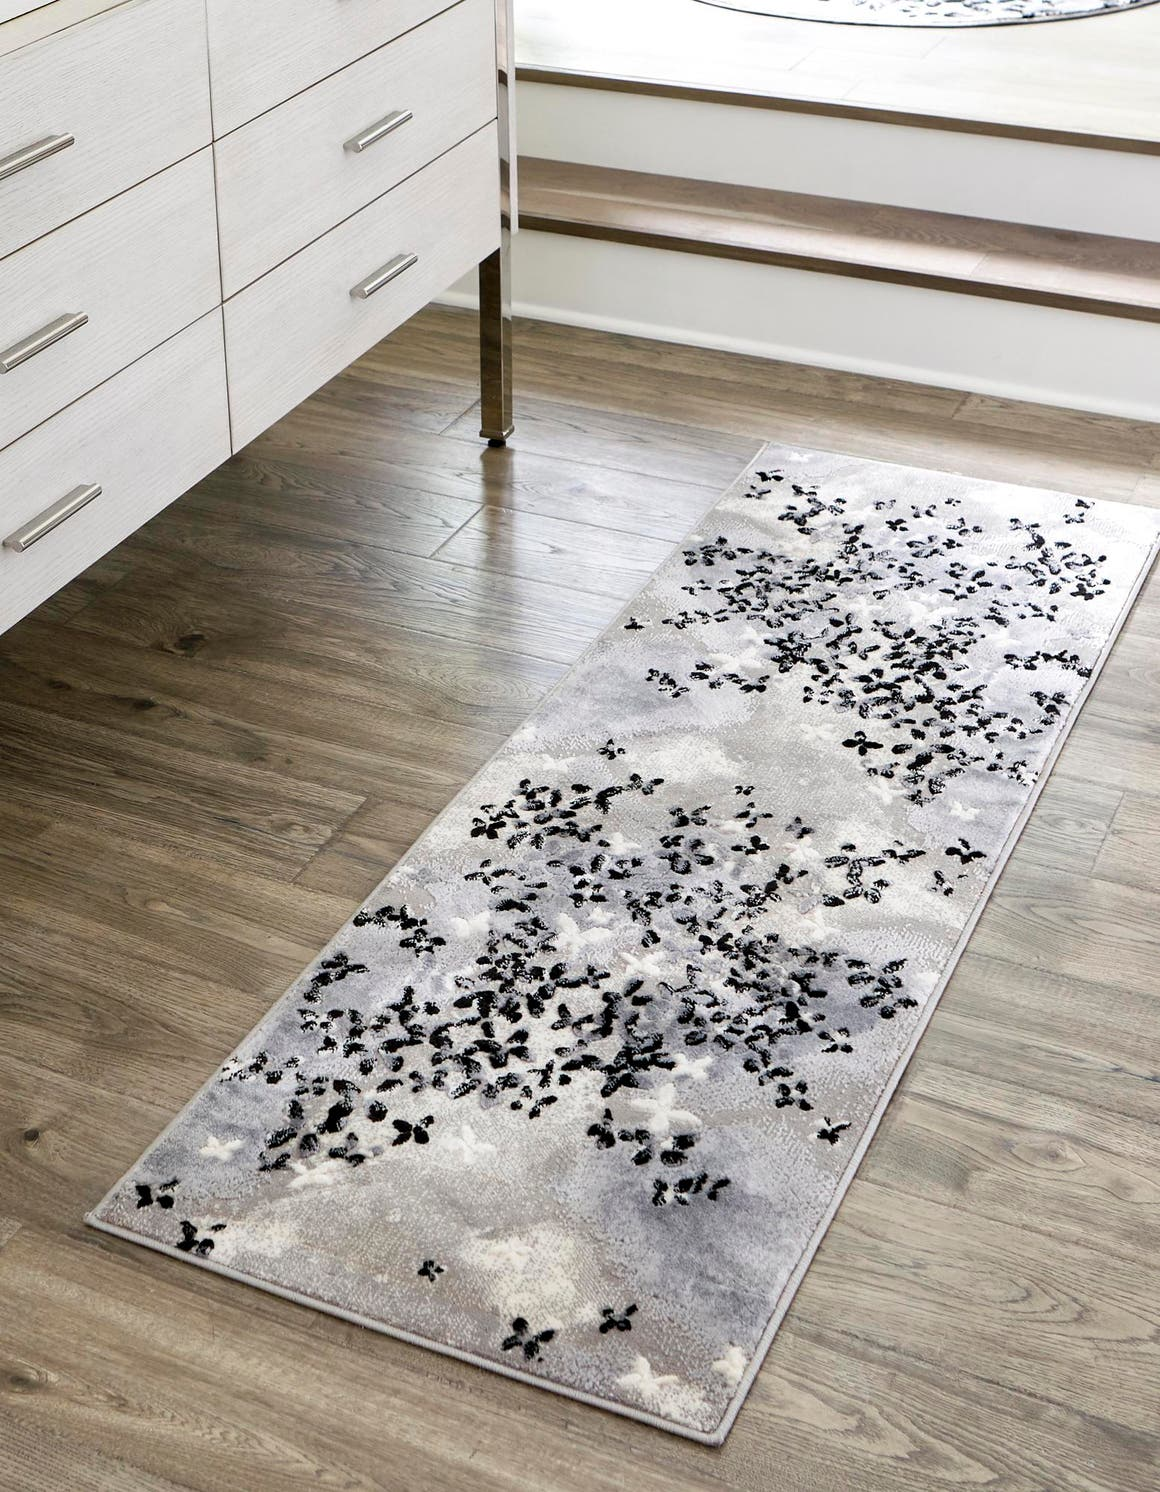 2' x 8' 8 Vince Camuto Runner Rug main image